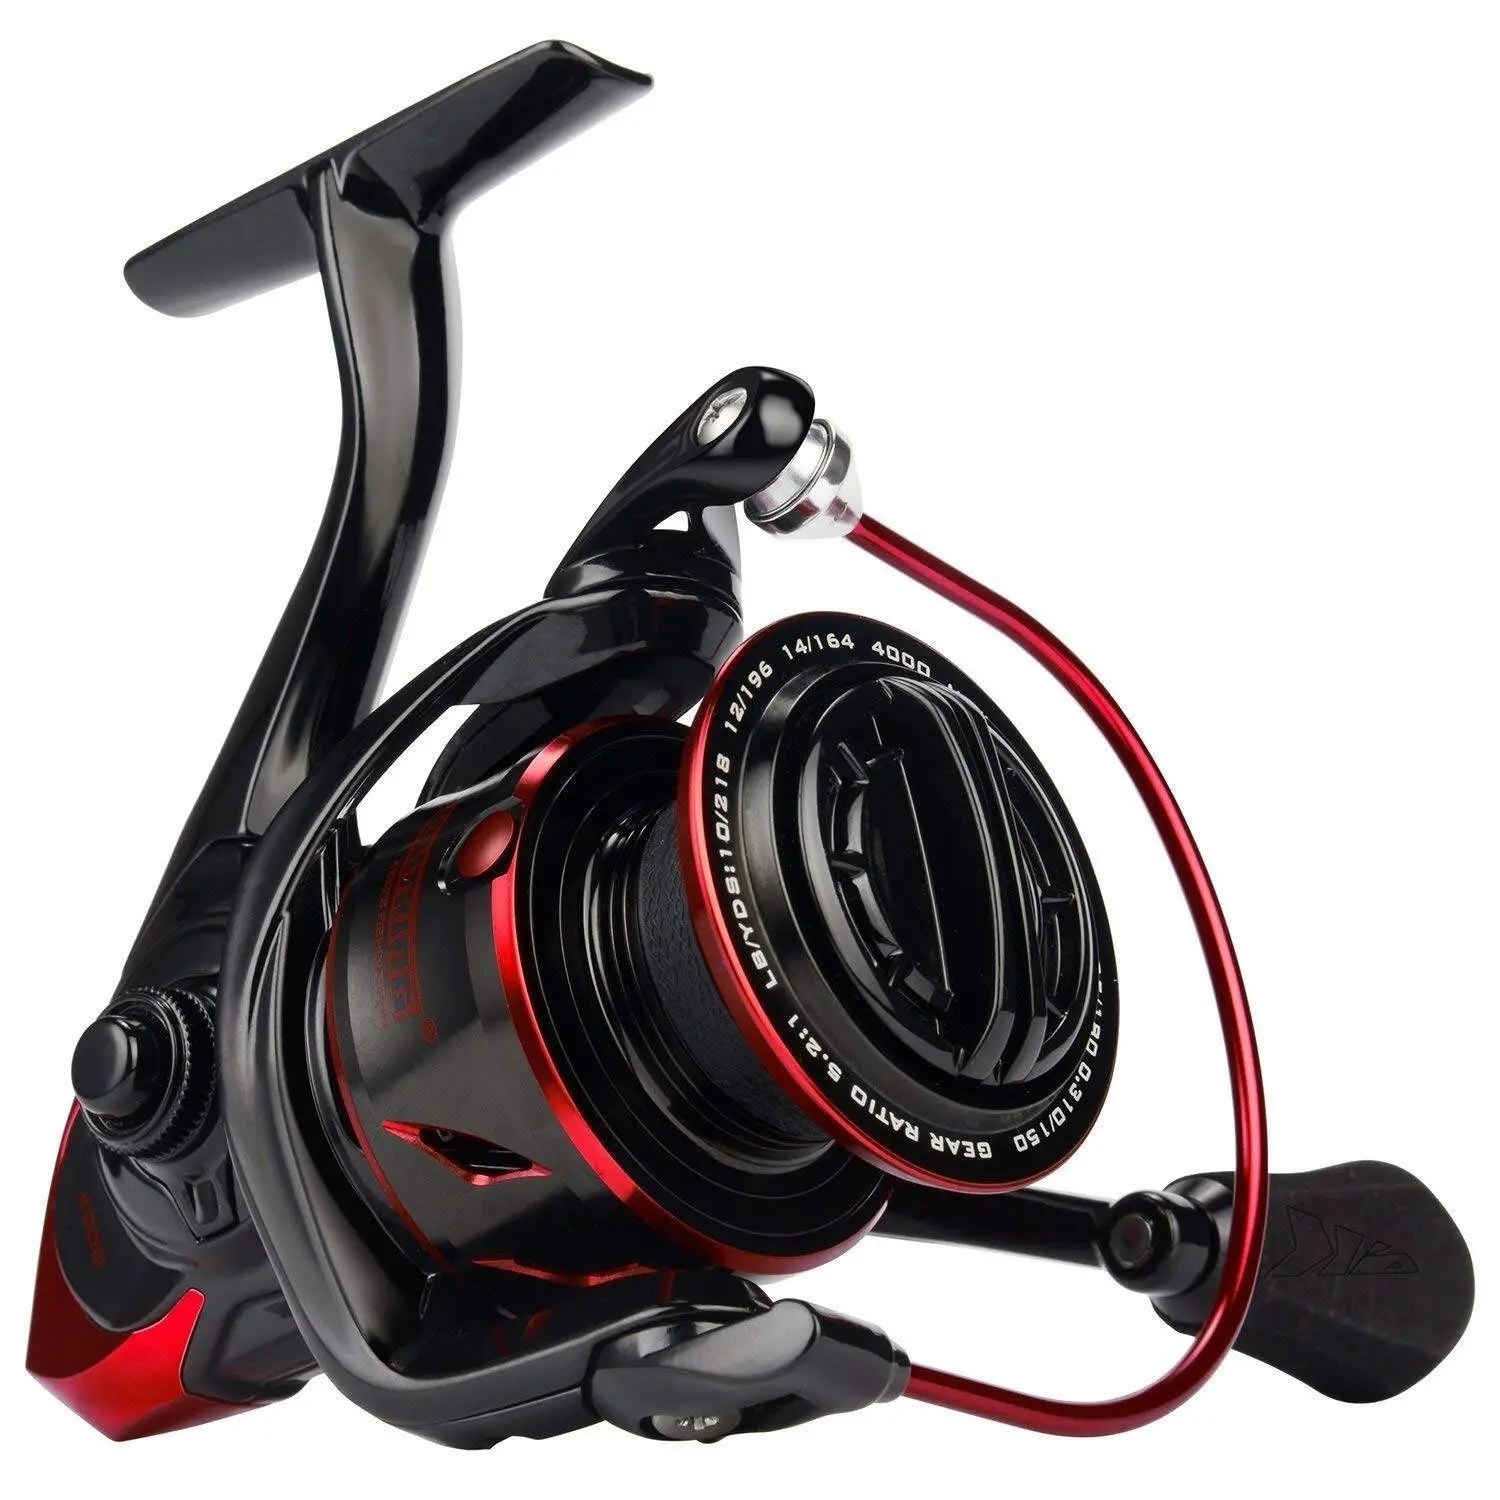 KastKing Sharky III Fishing Reel - New 2018